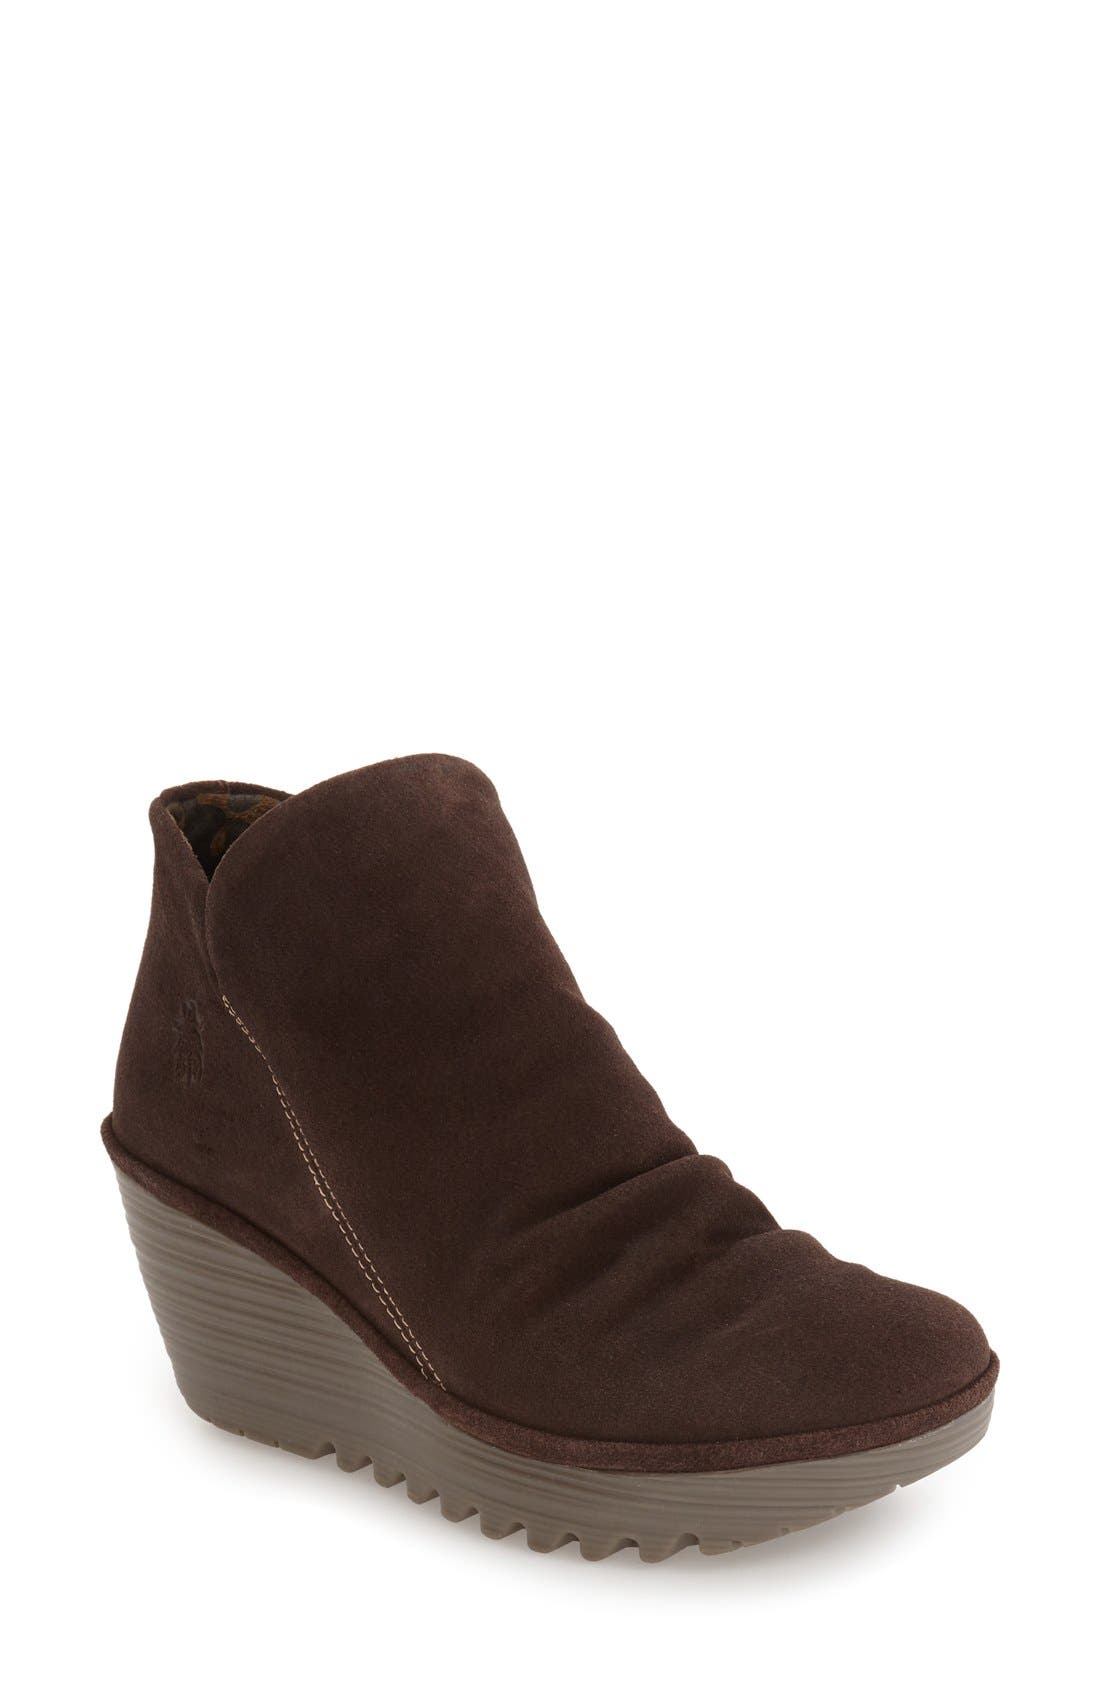 'Yip' Wedge Bootie,                         Main,                         color, Expresso Oil Suede